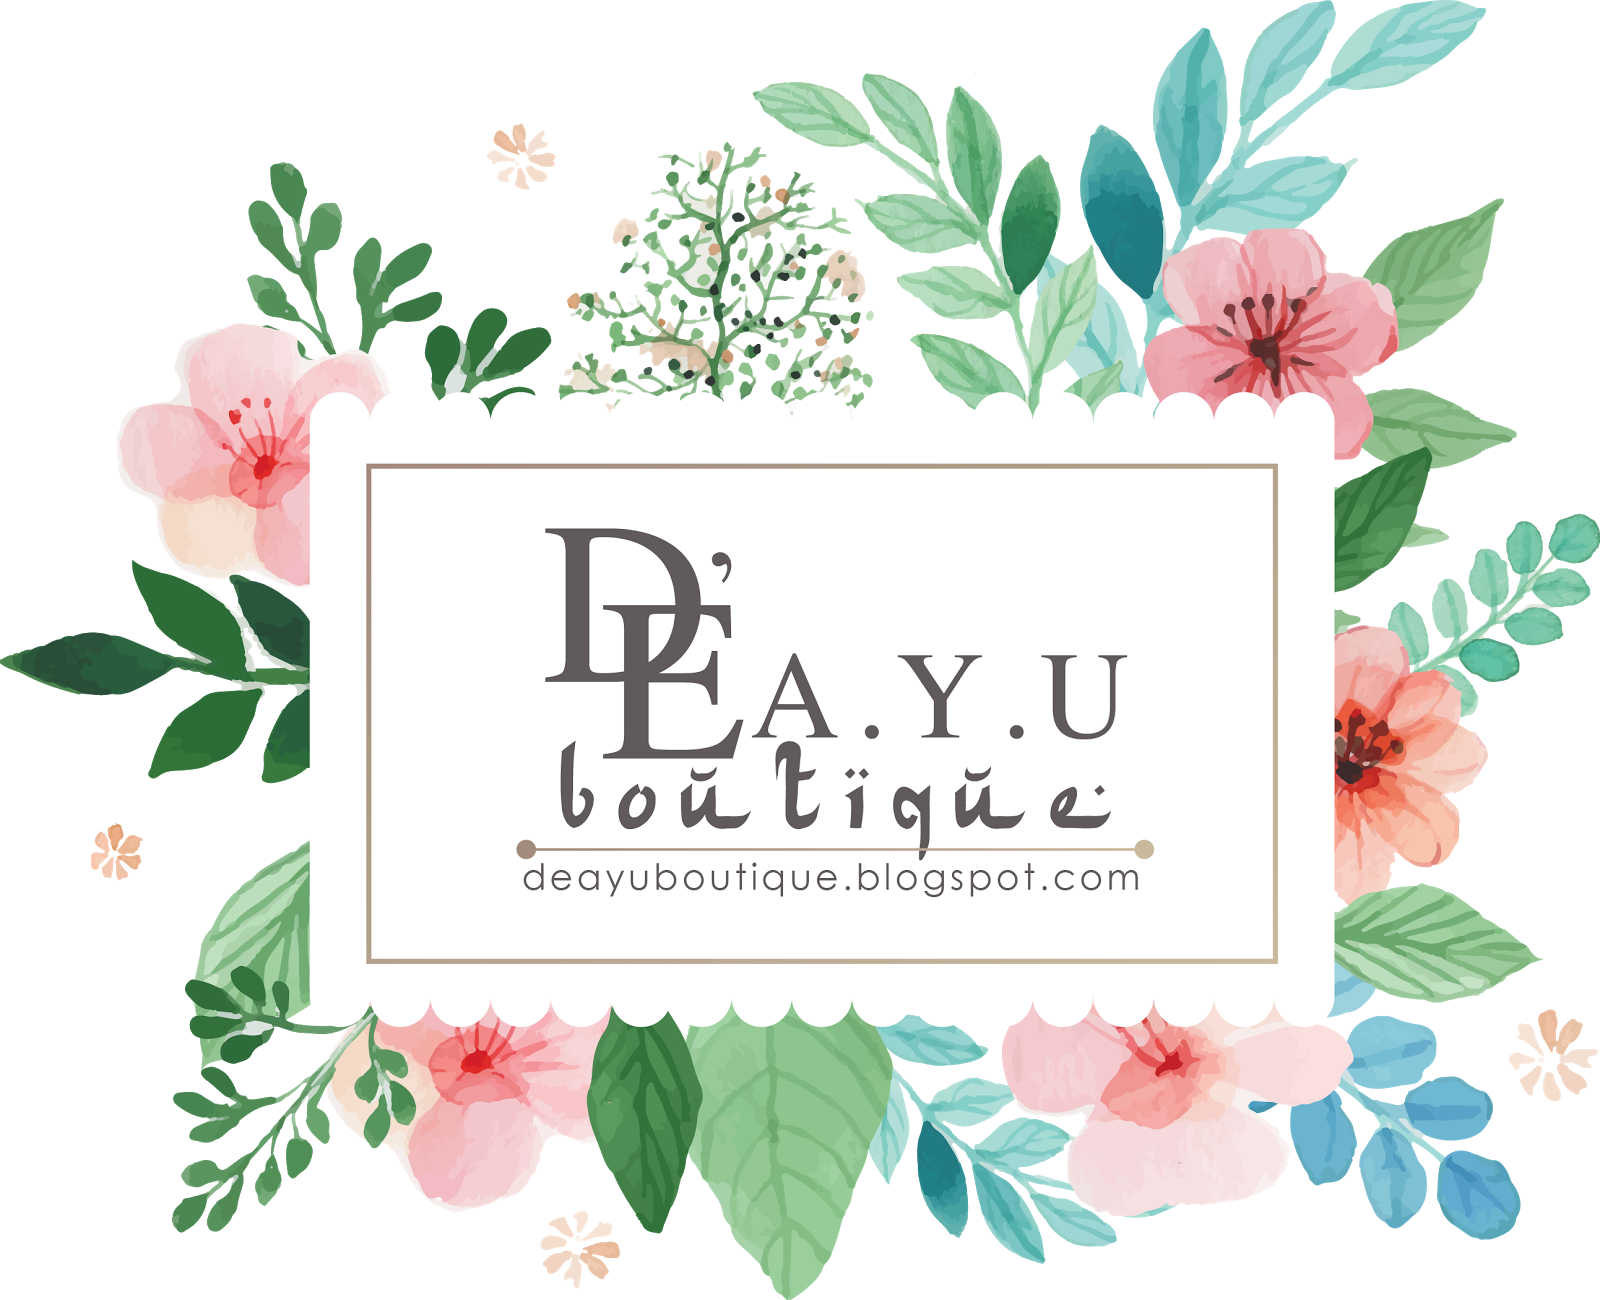 De Ayu Boutique